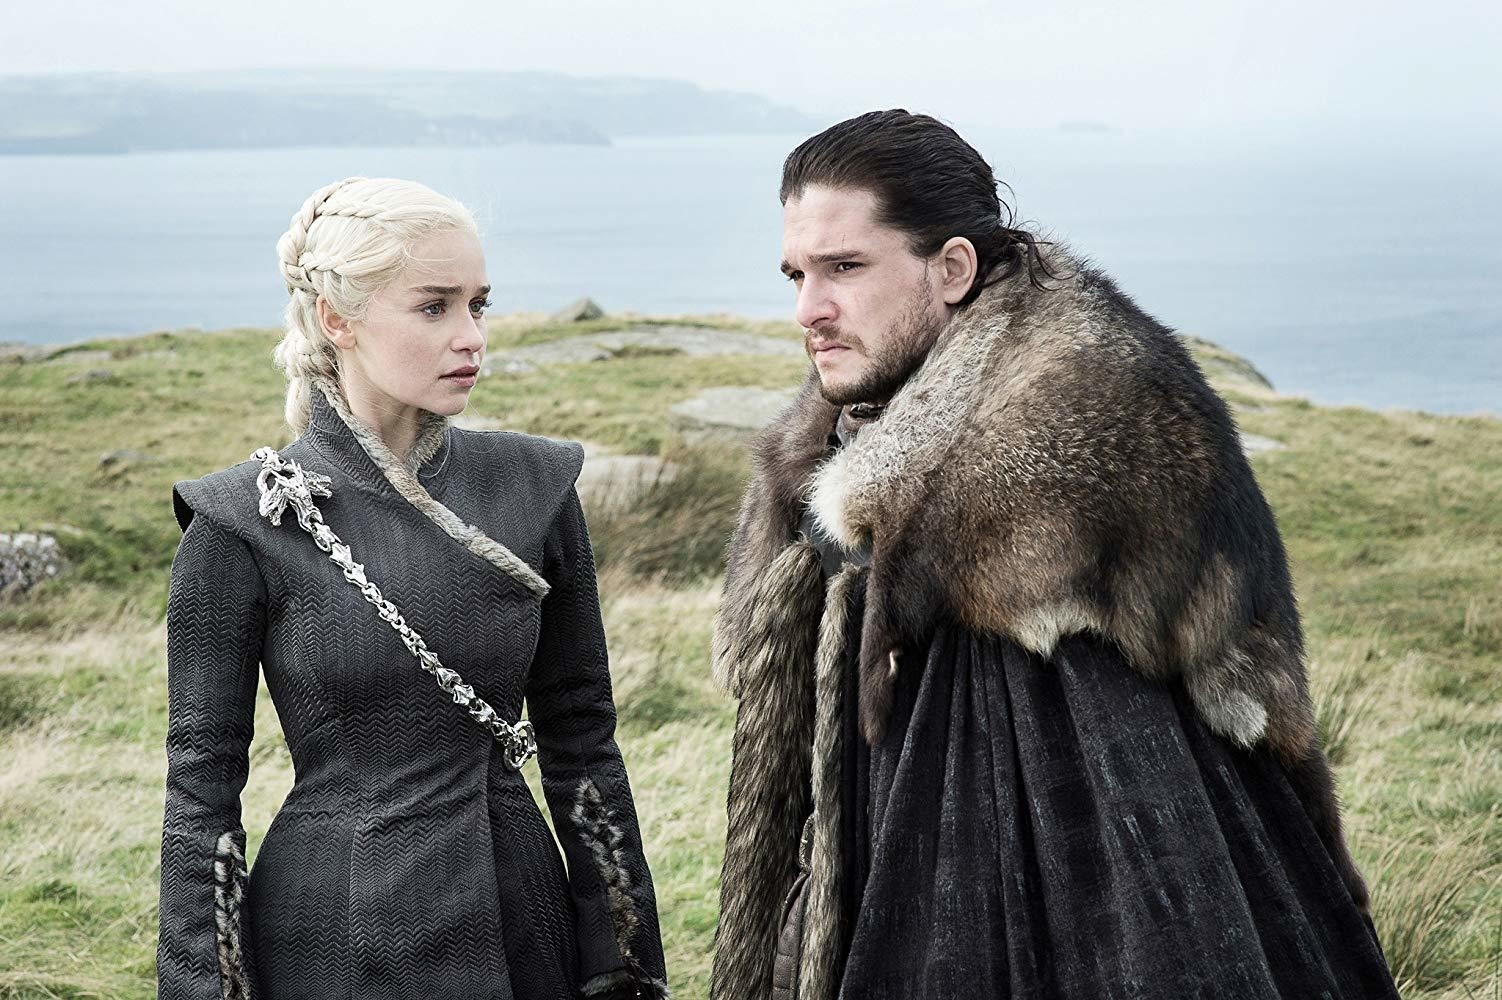 HBO Teases First Look At 'Game Of Thrones' Season 8